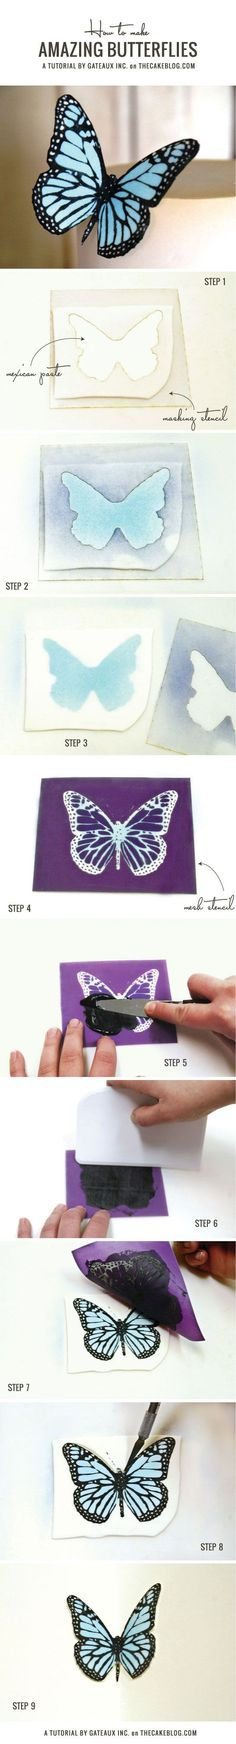 How to make amazing fondant butterflies in no time flat | by Gateux Inc. on TheCakeBlog.com: